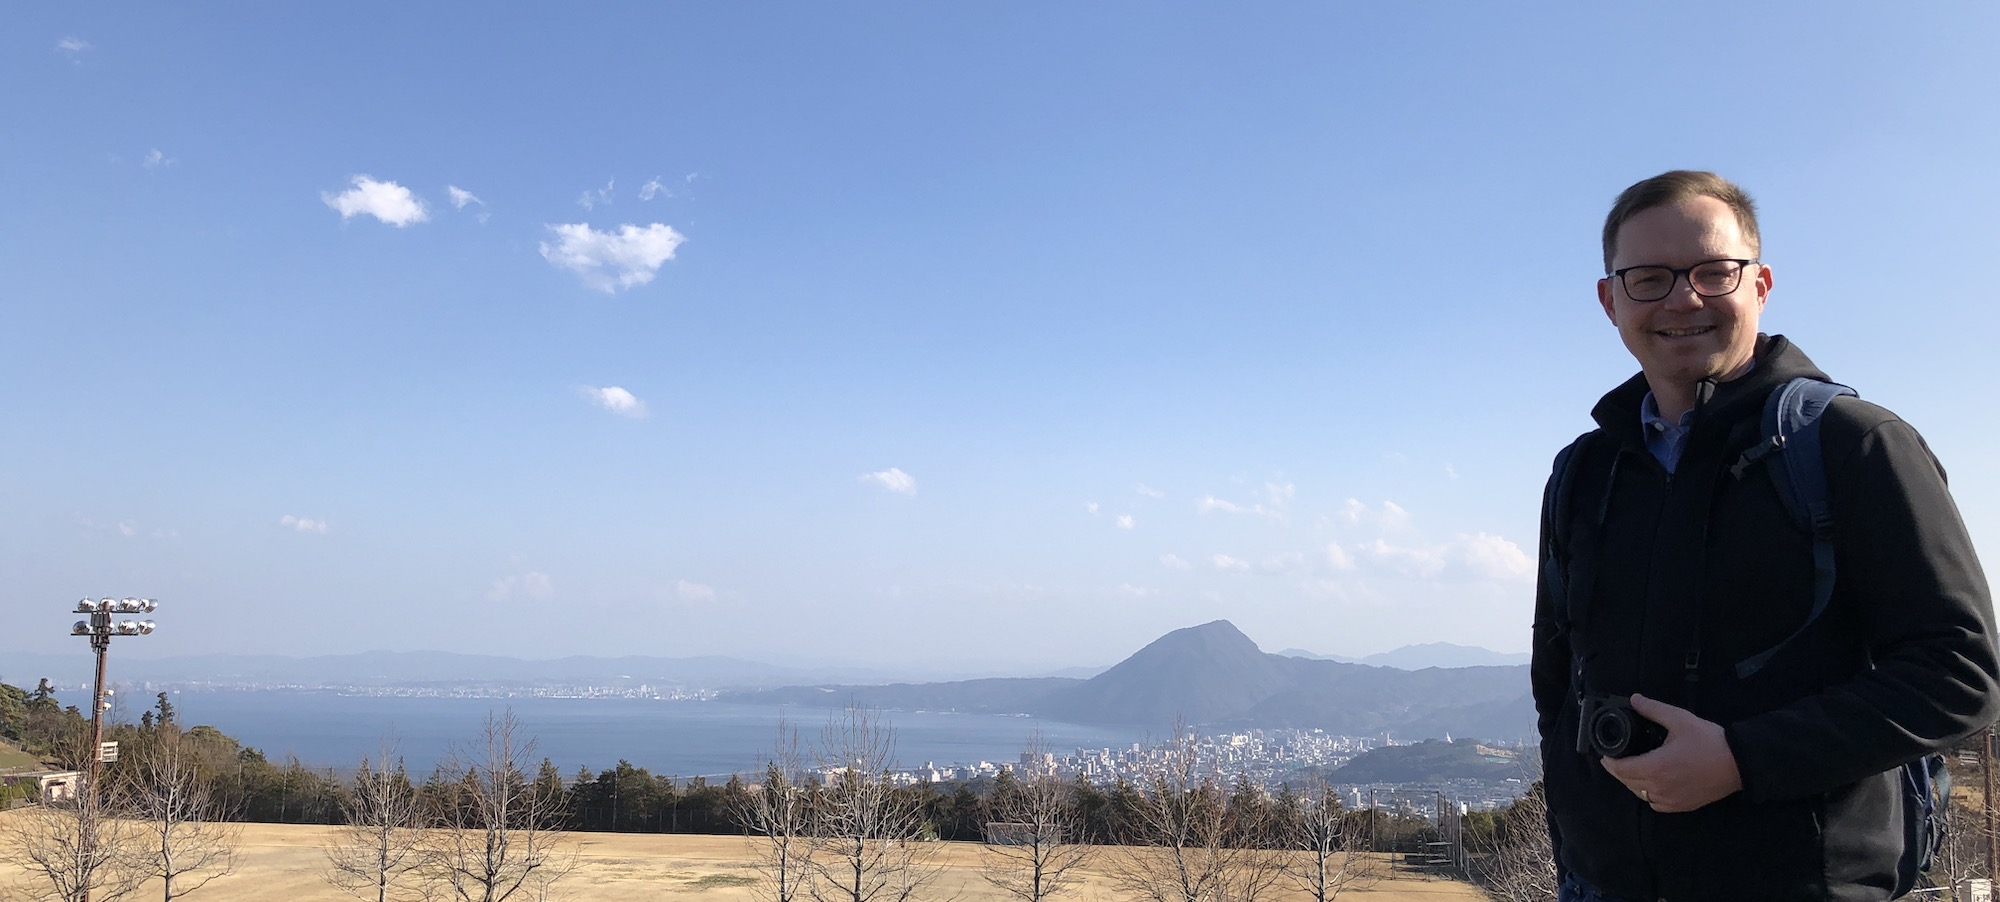 Chad poses in front of vista of Beppu bay